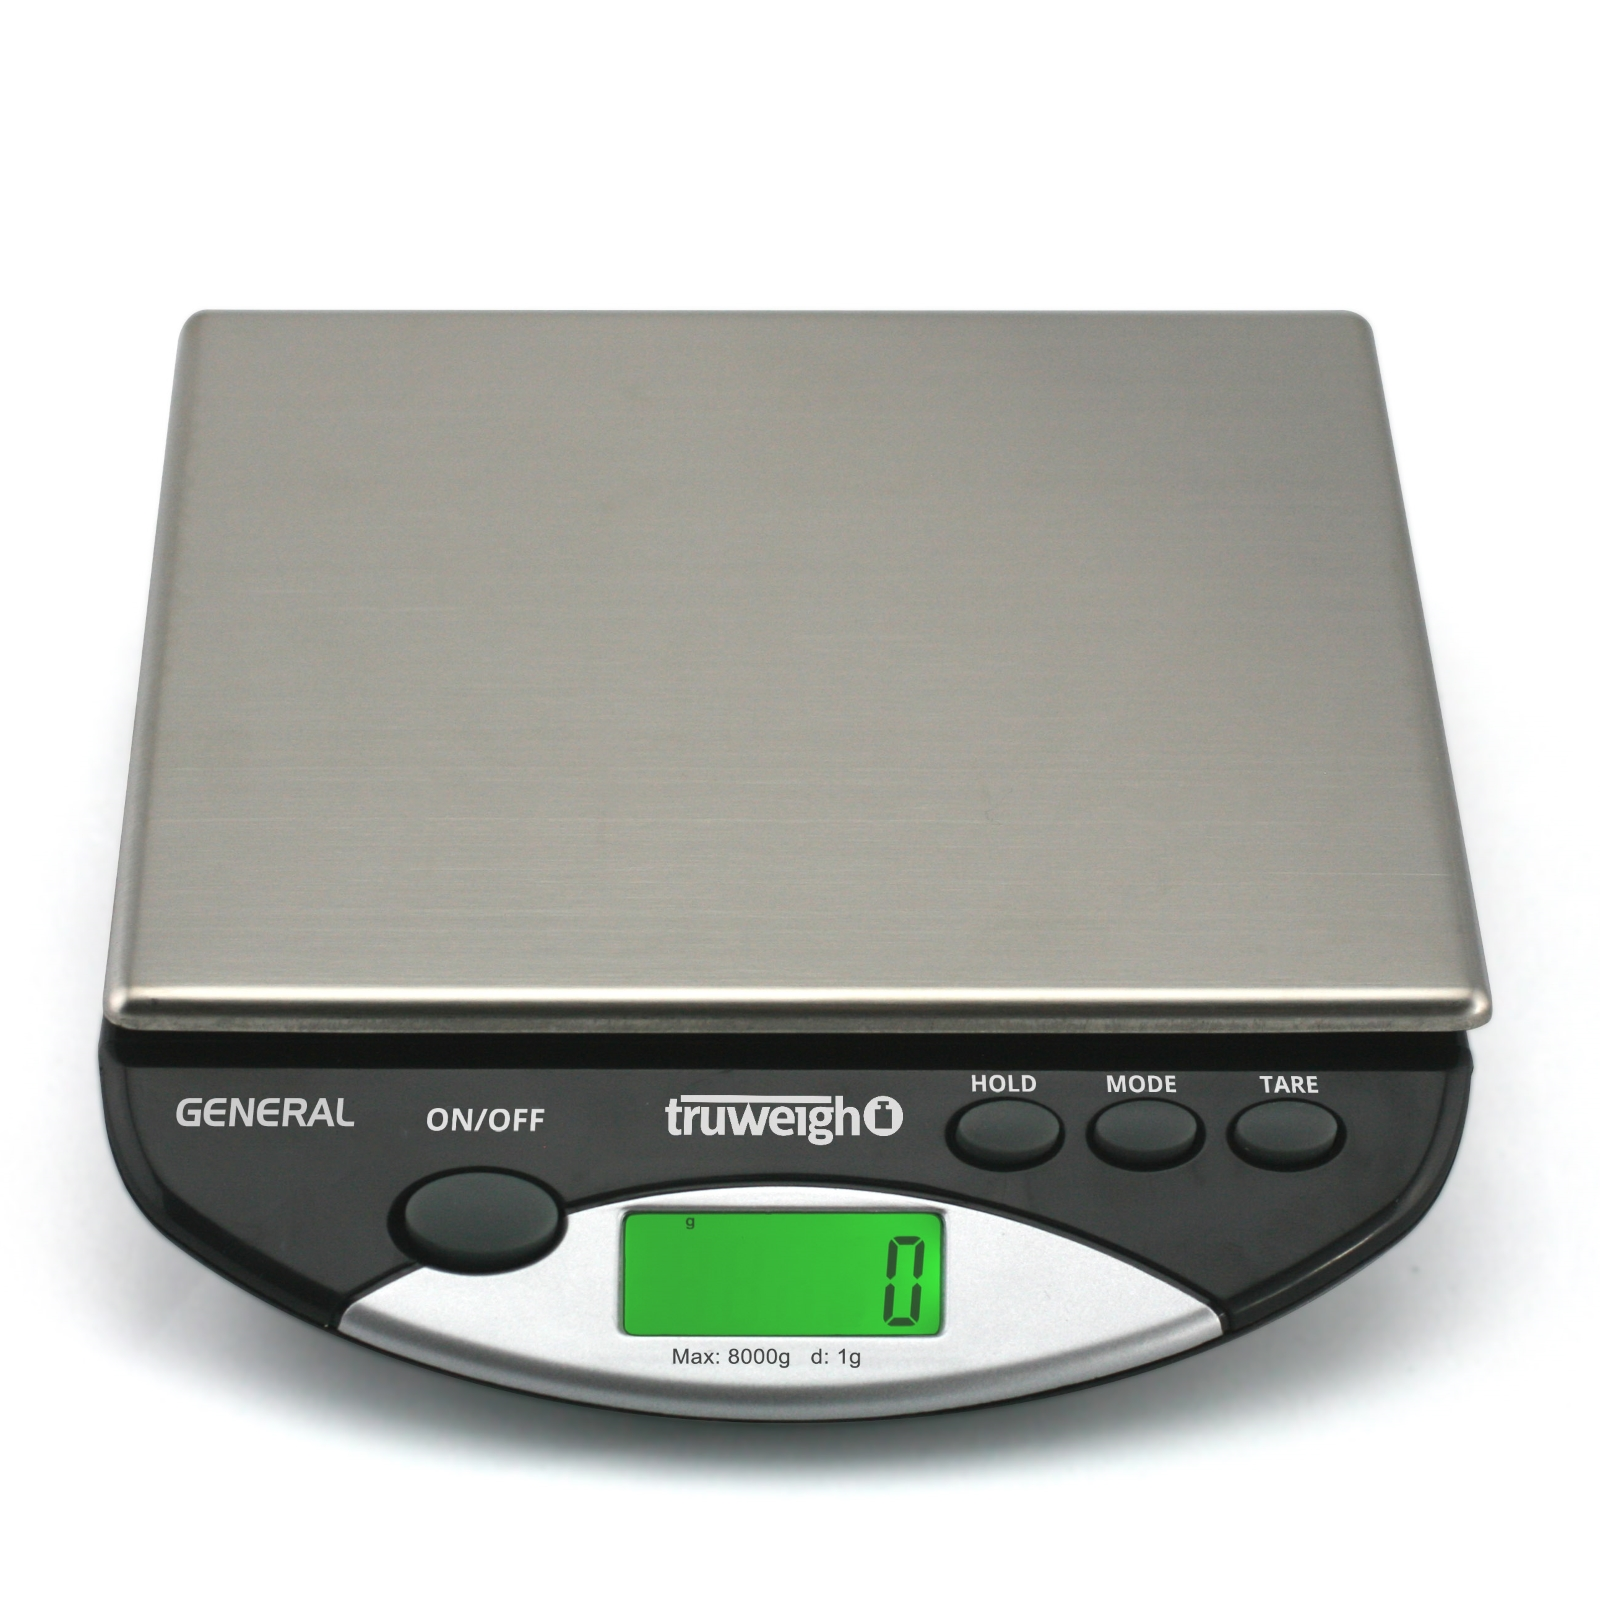 TruWeigh GENERAL Compact Digital Kitchen Scale 8000g x 1g